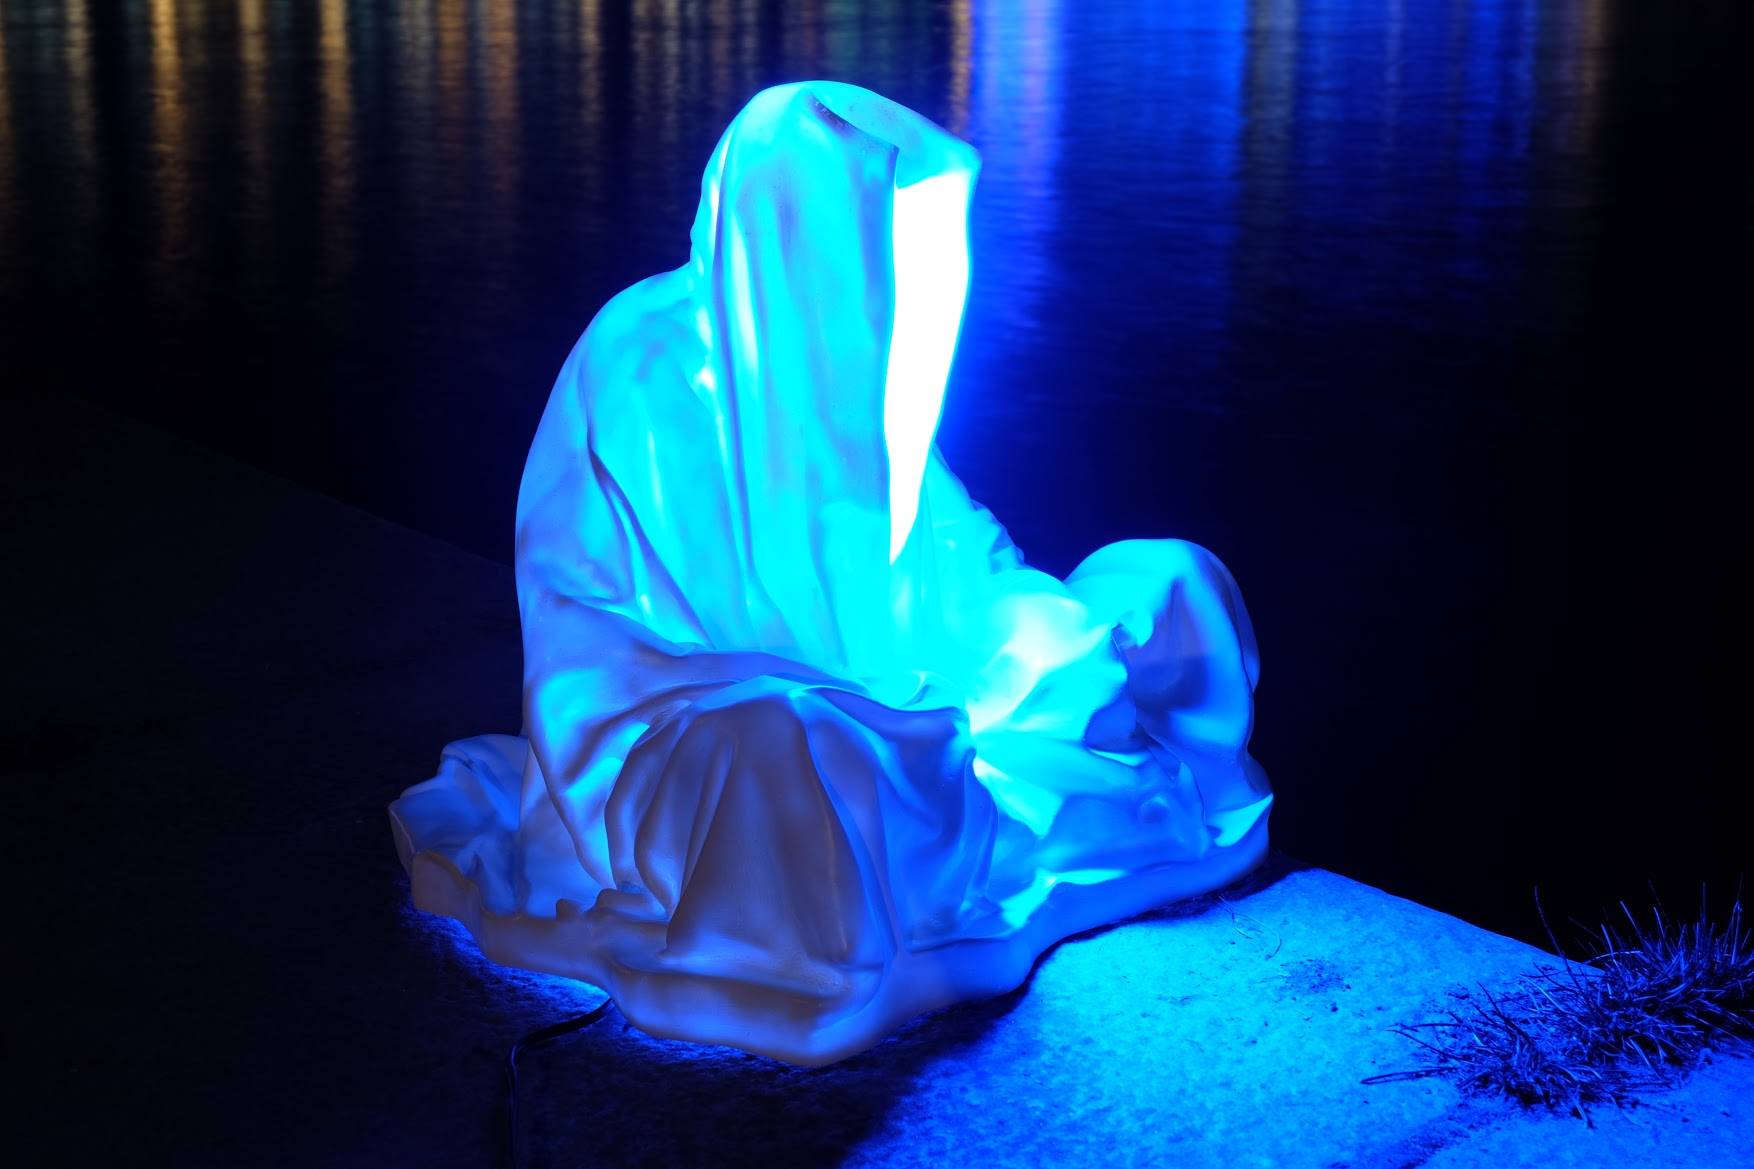 guardians of time manfred kielnhofer linz light art contemporary art sculpture statue modern design lamp light lumina 1791